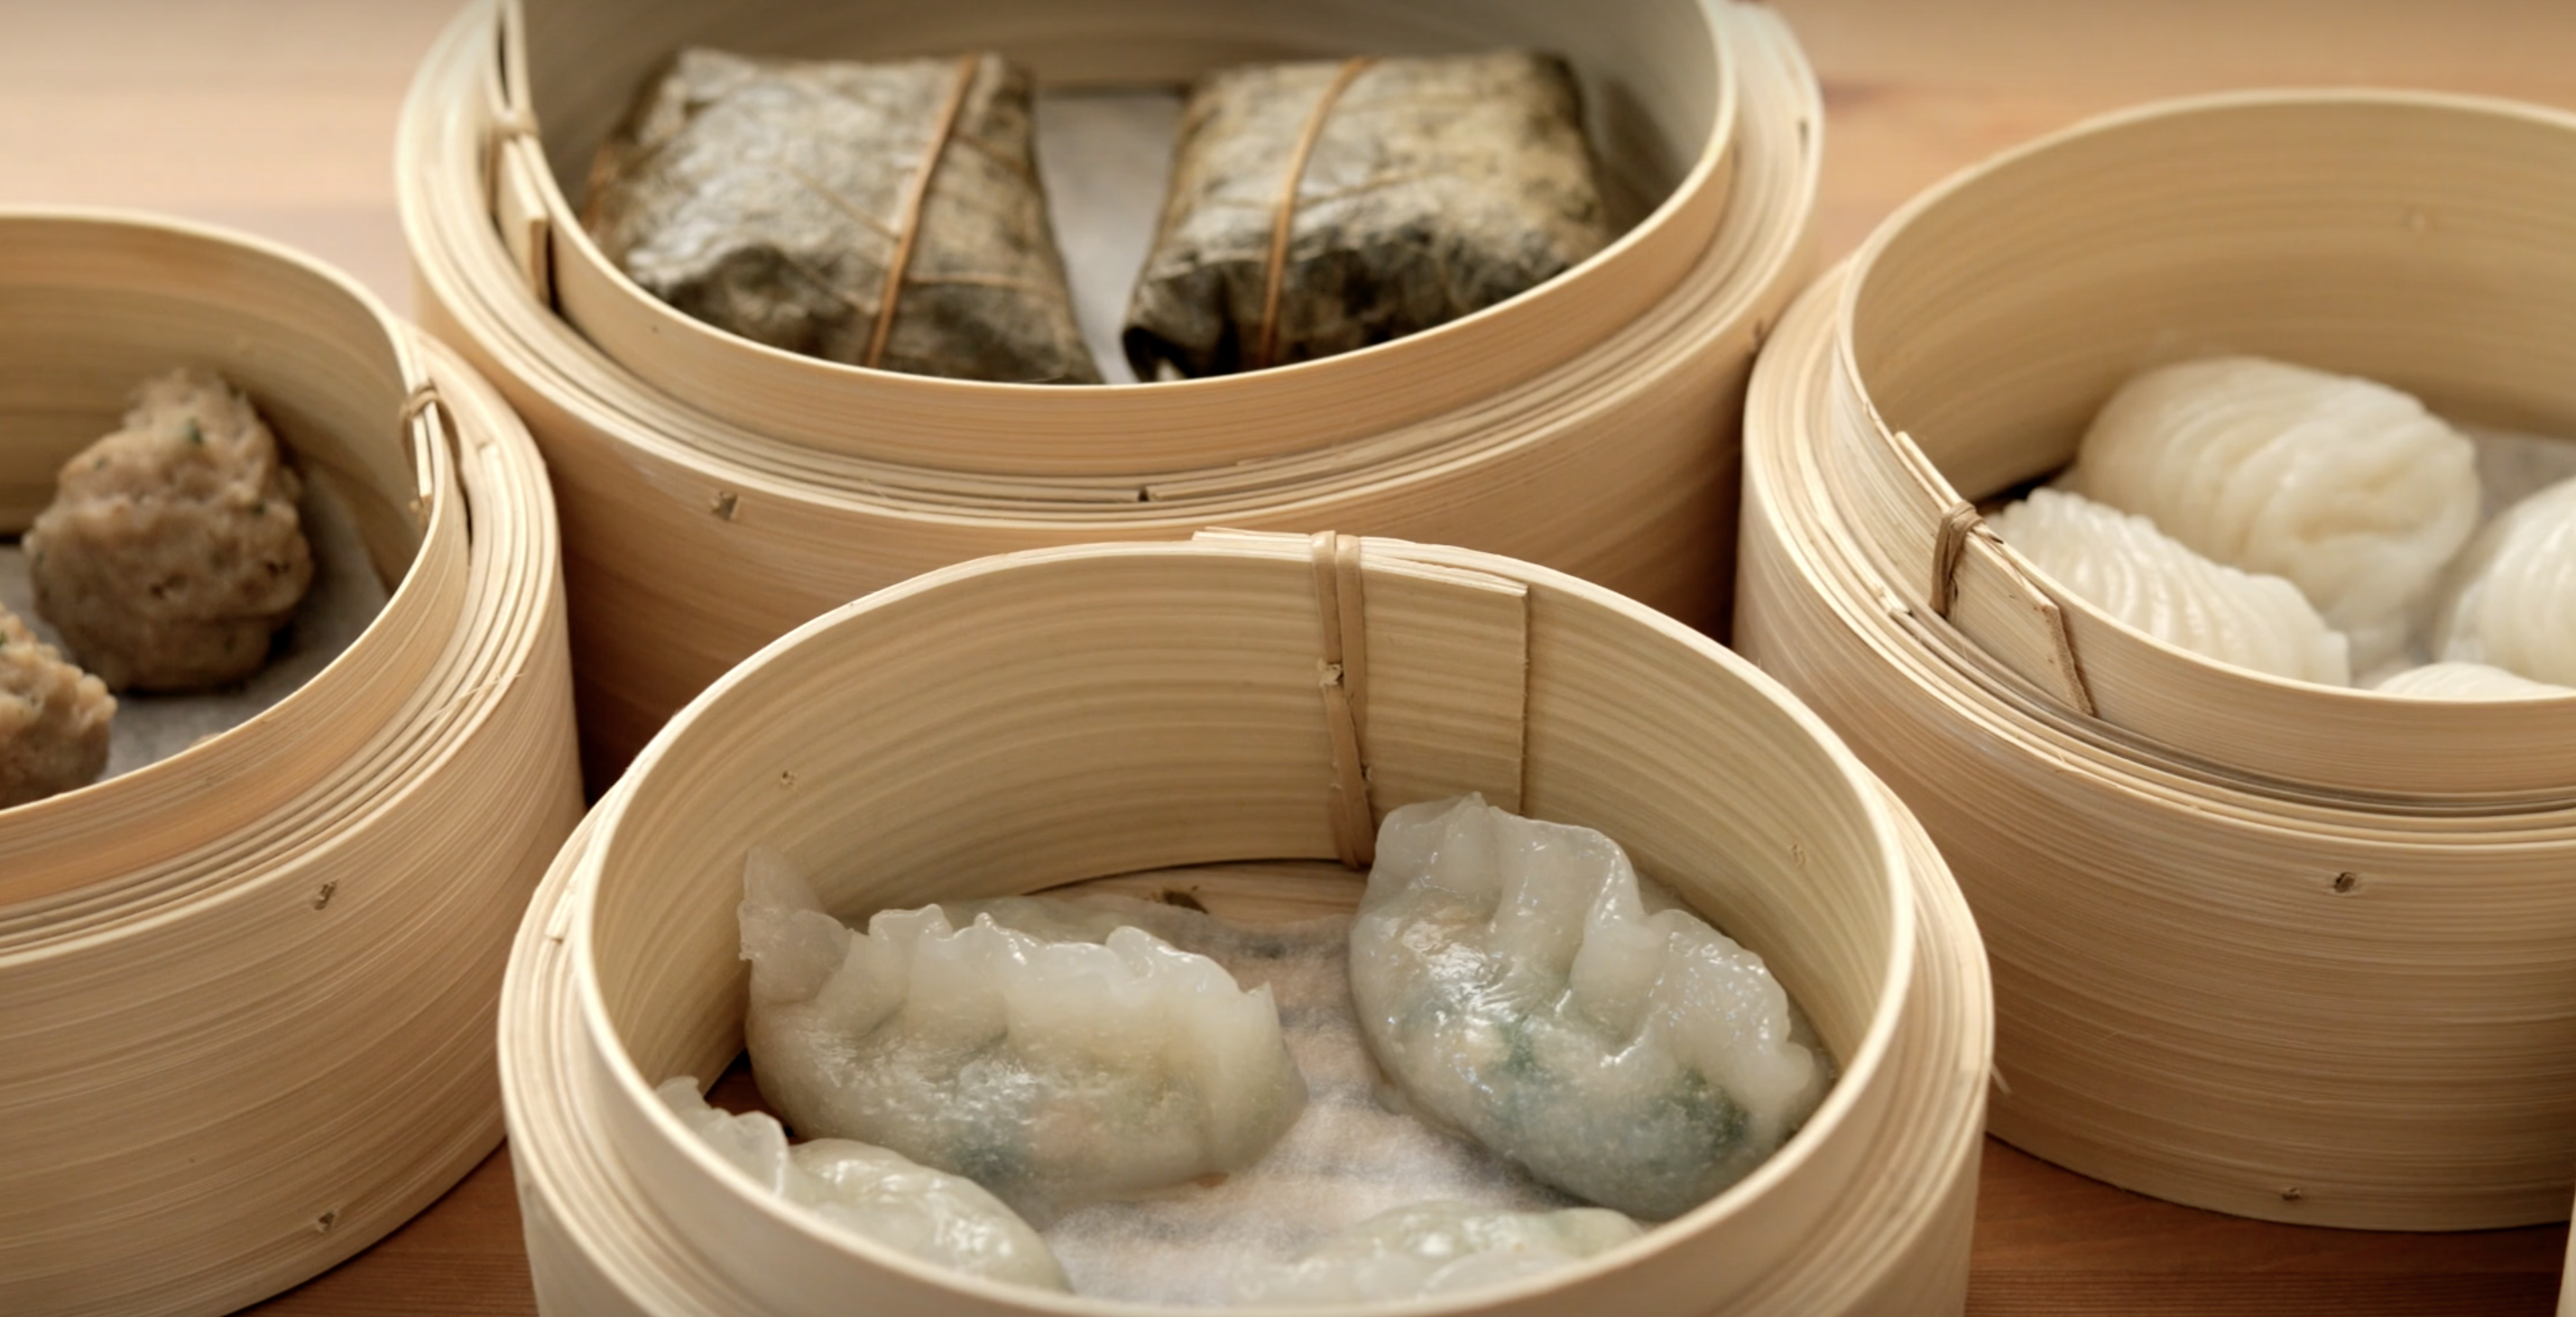 A still shot of a video showing moving steam trays of dim sum.